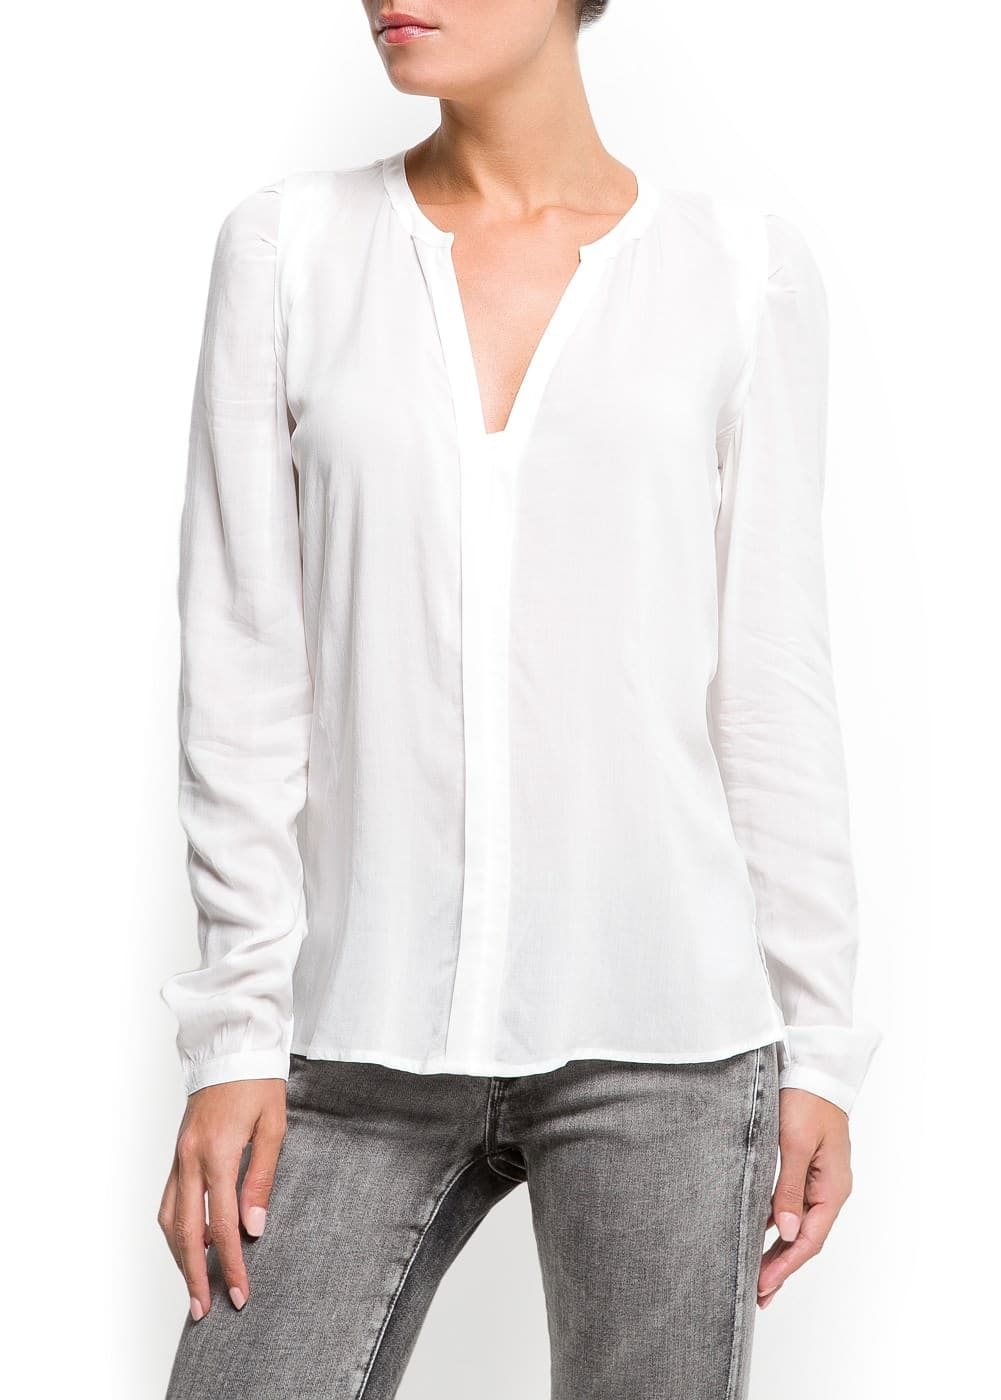 V-neck light shirt